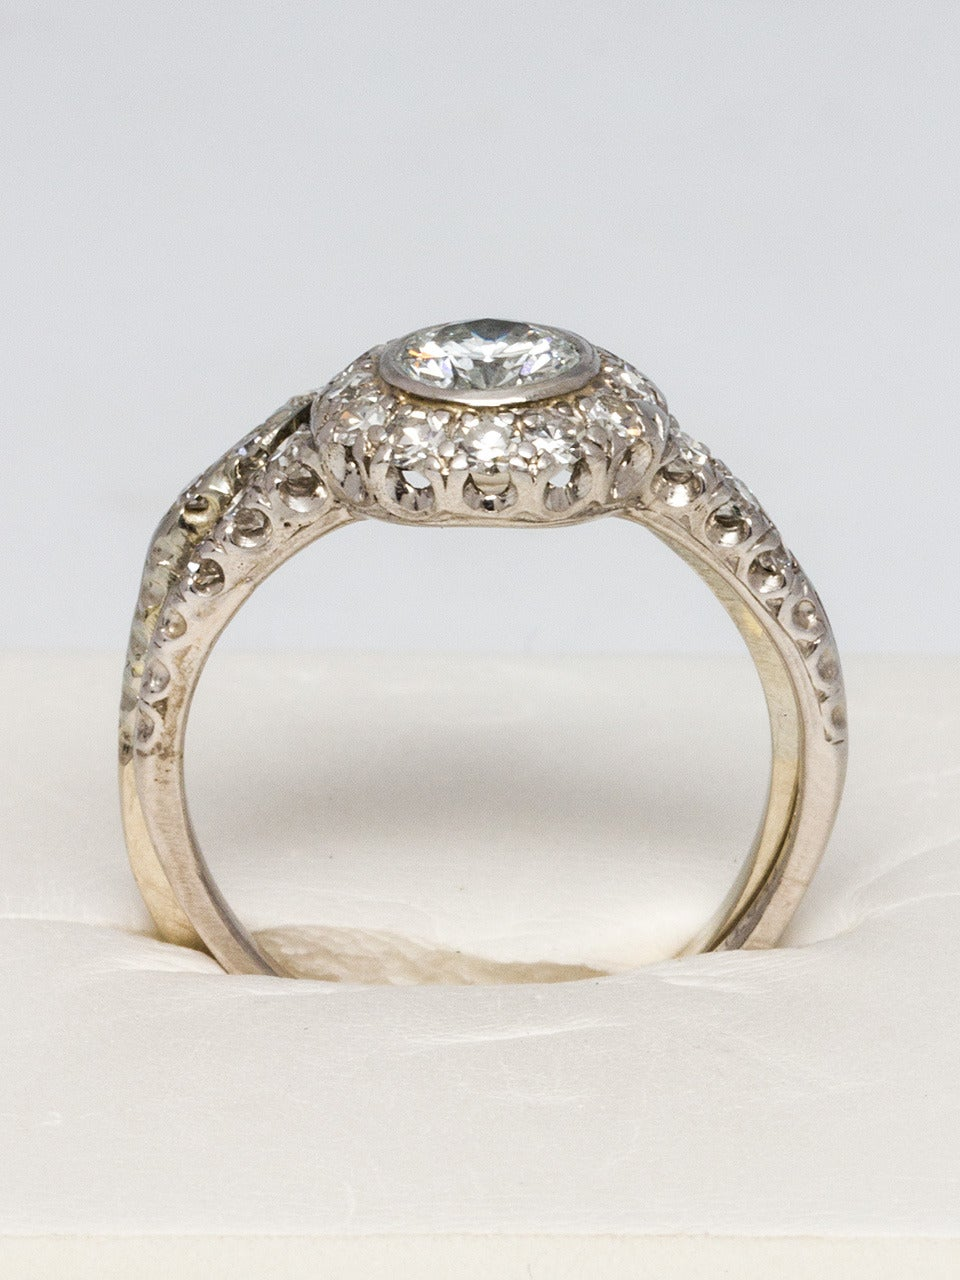 1960s Diamond Platinum Gold Wedding Ring Set at 1stdibs